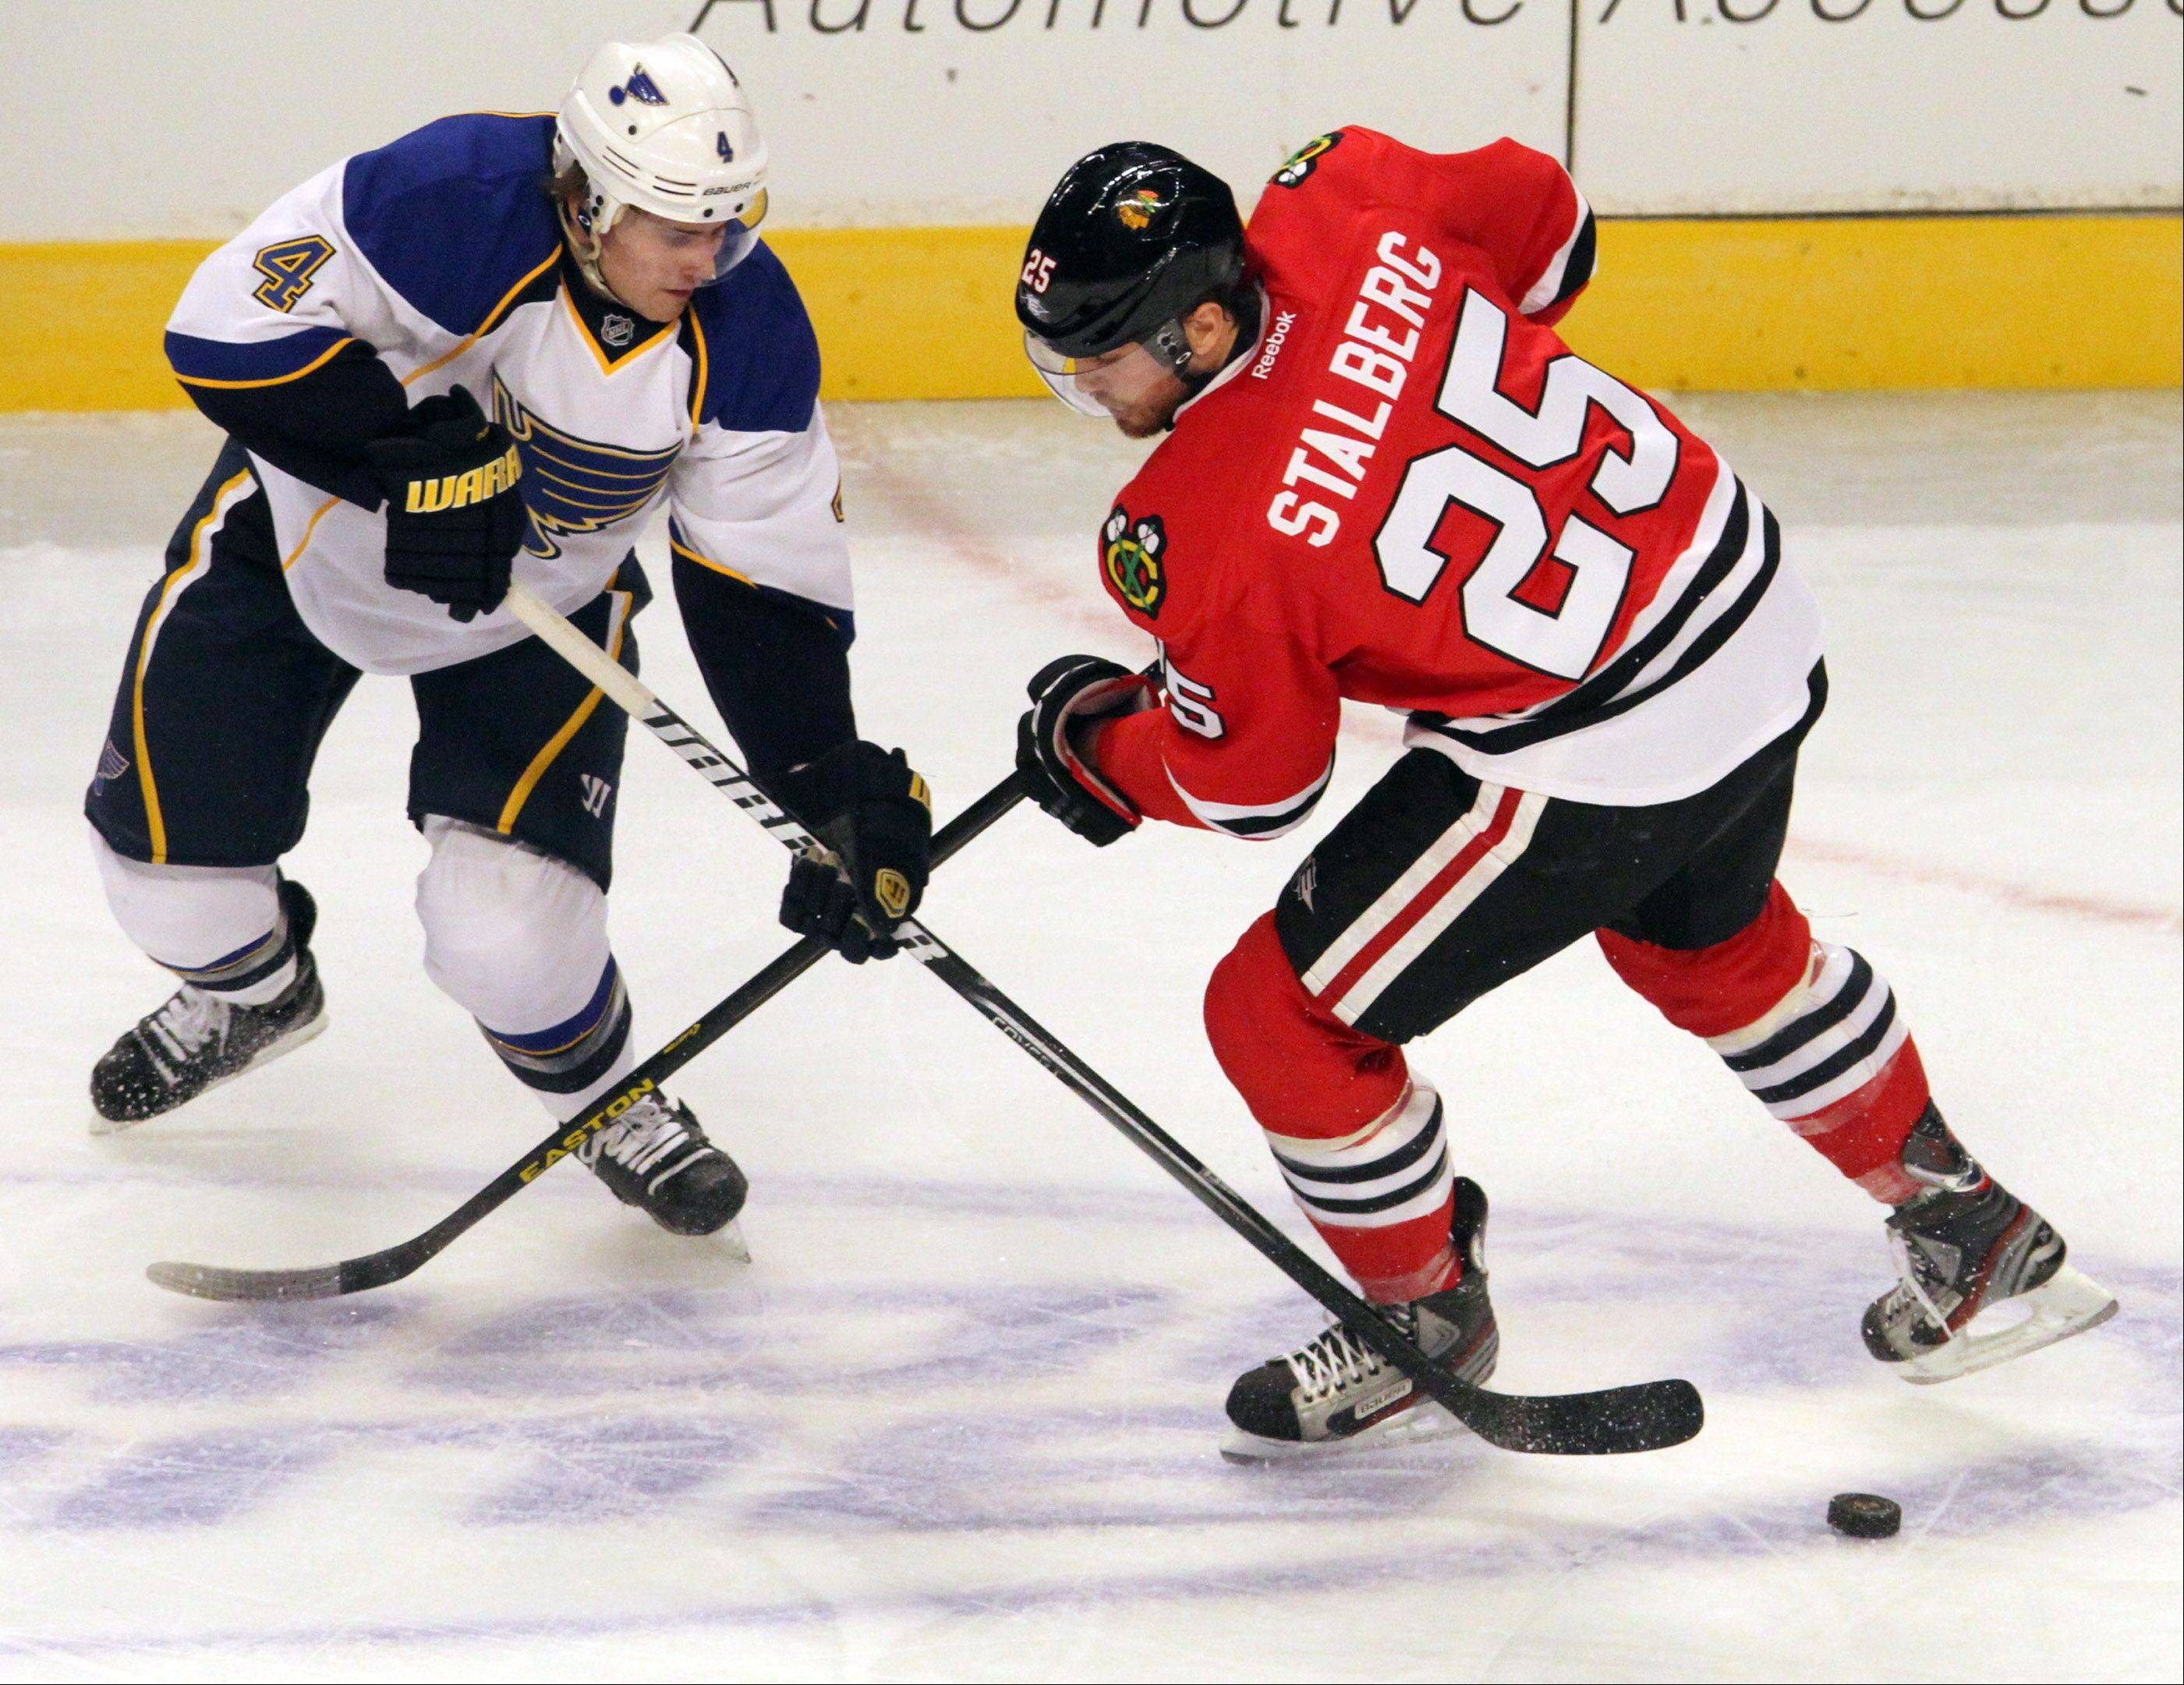 St. Louis Blues defenseman Kris Russell steals the puck from Chicago Blackhawks left wing Viktor Stalberg during the second period.